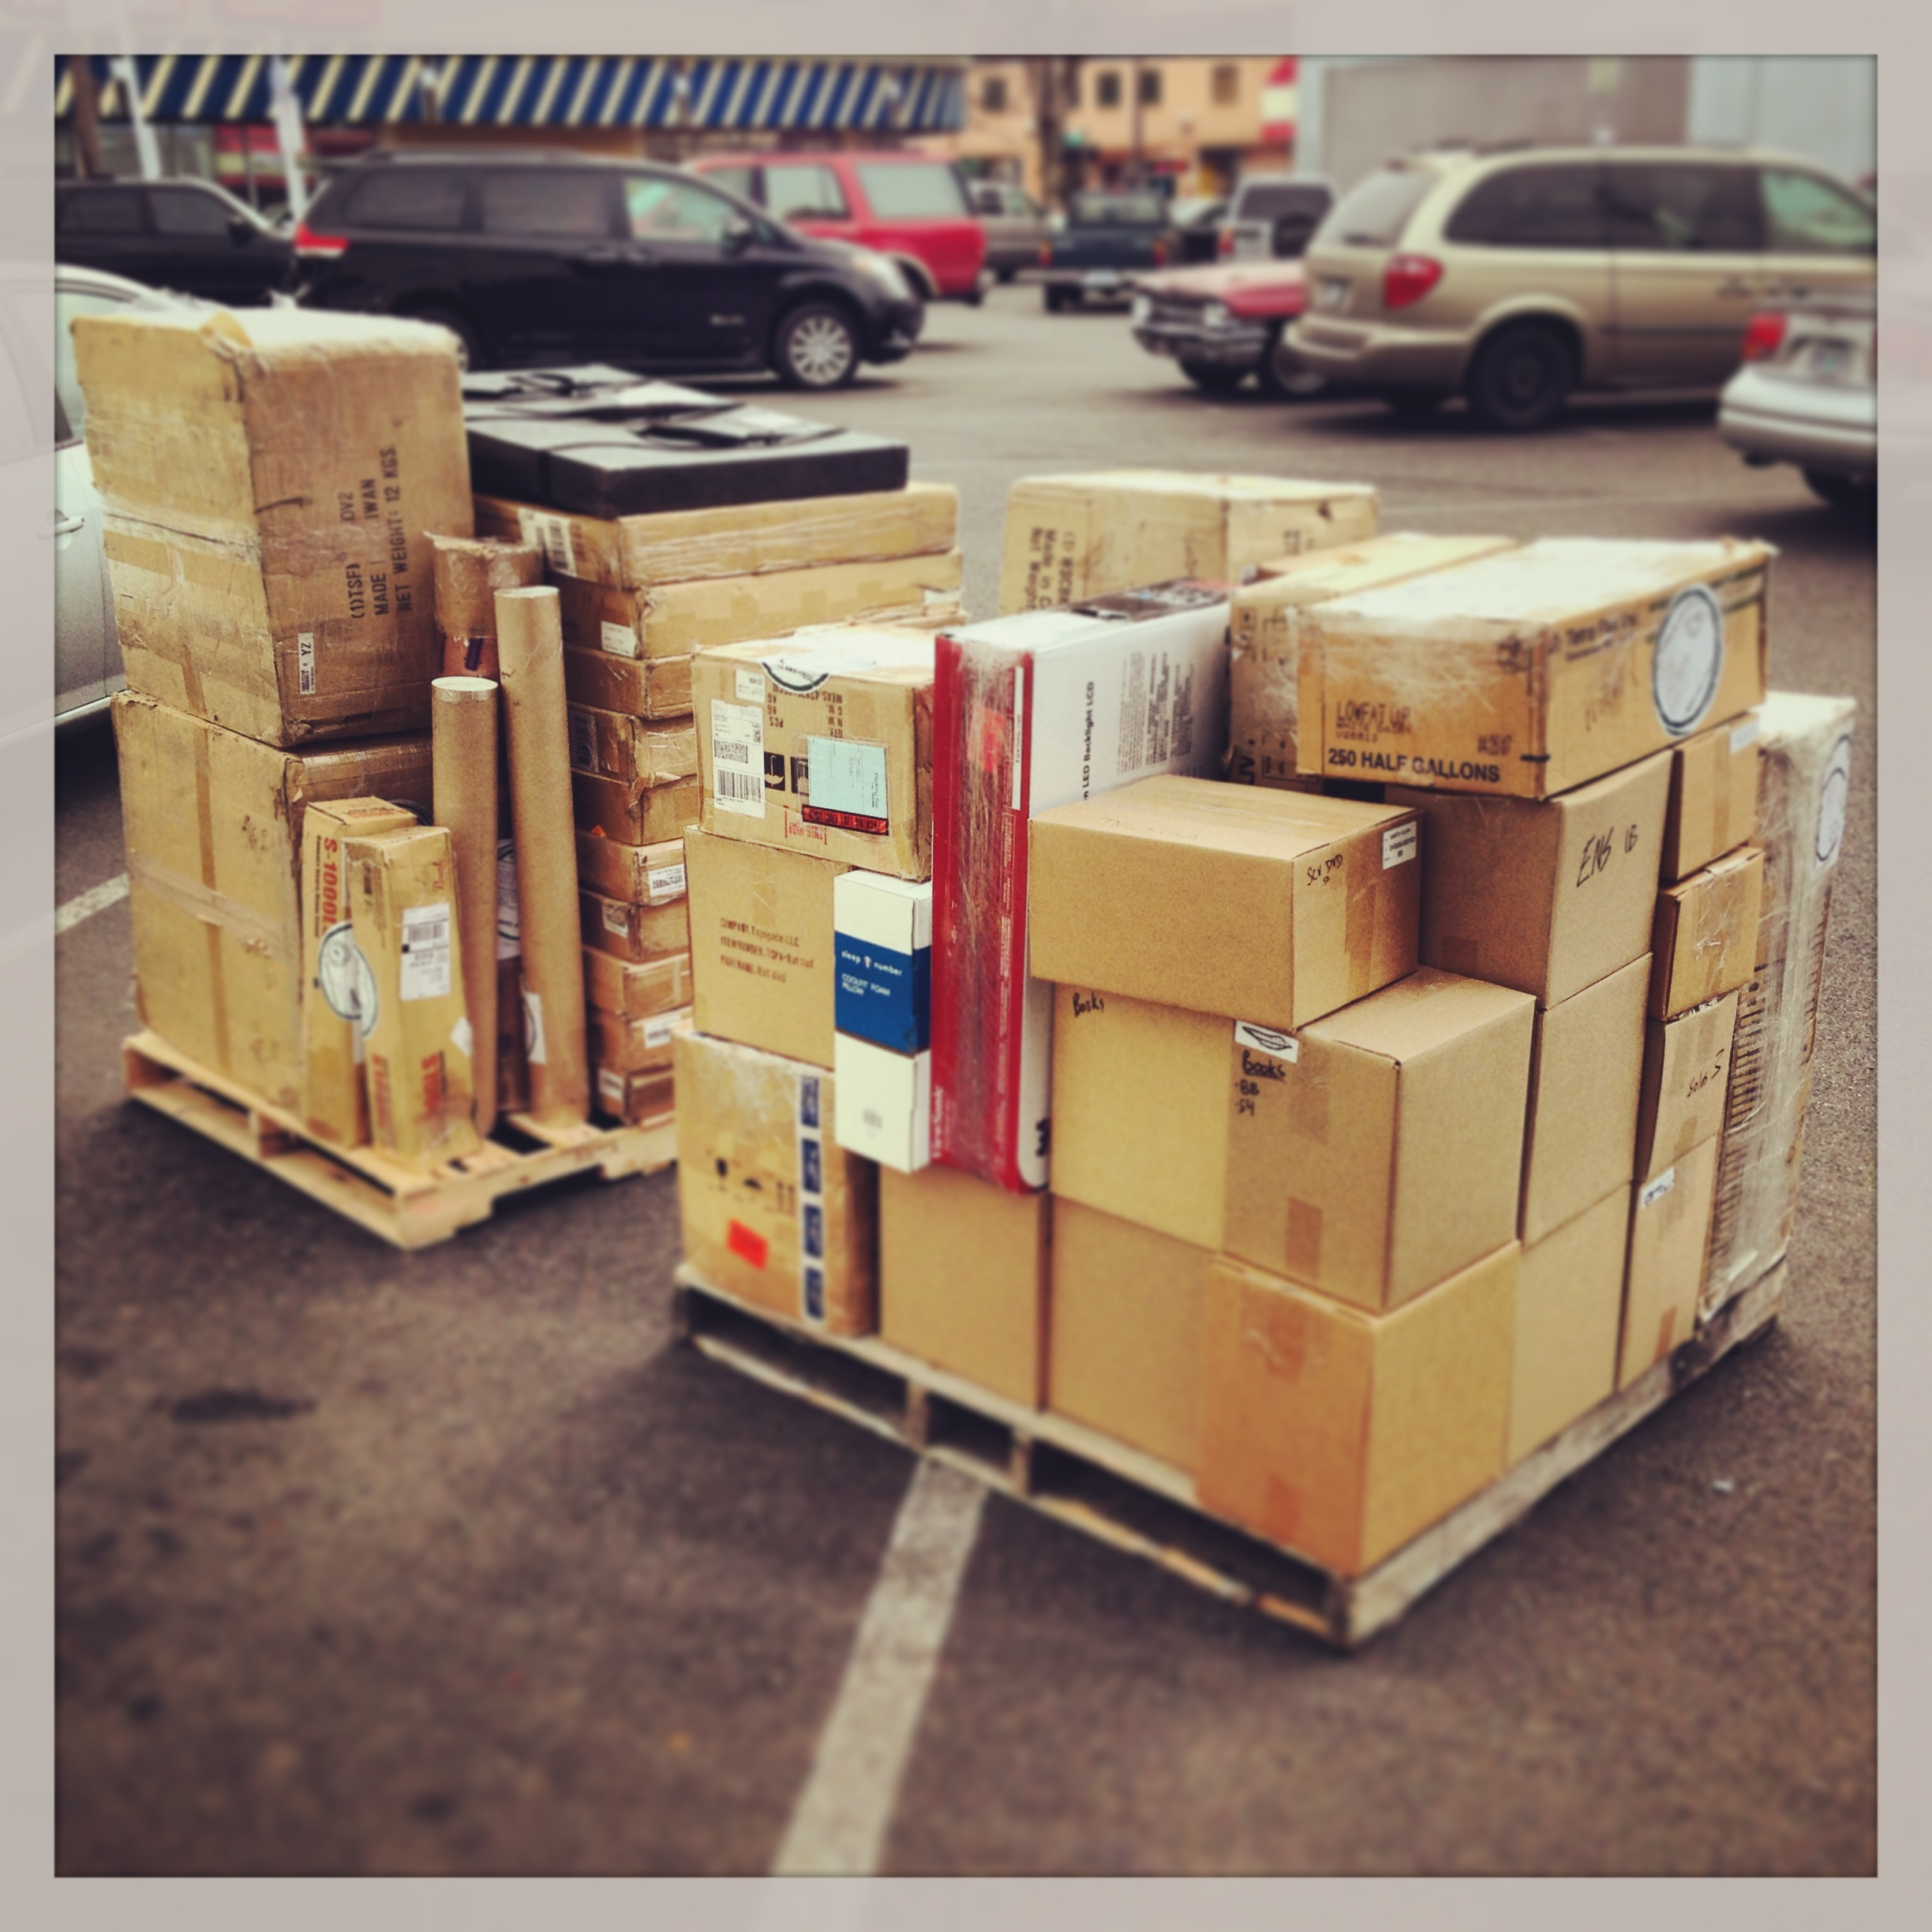 Our TMEA pallets are loaded up! Come see us in booth 2755!